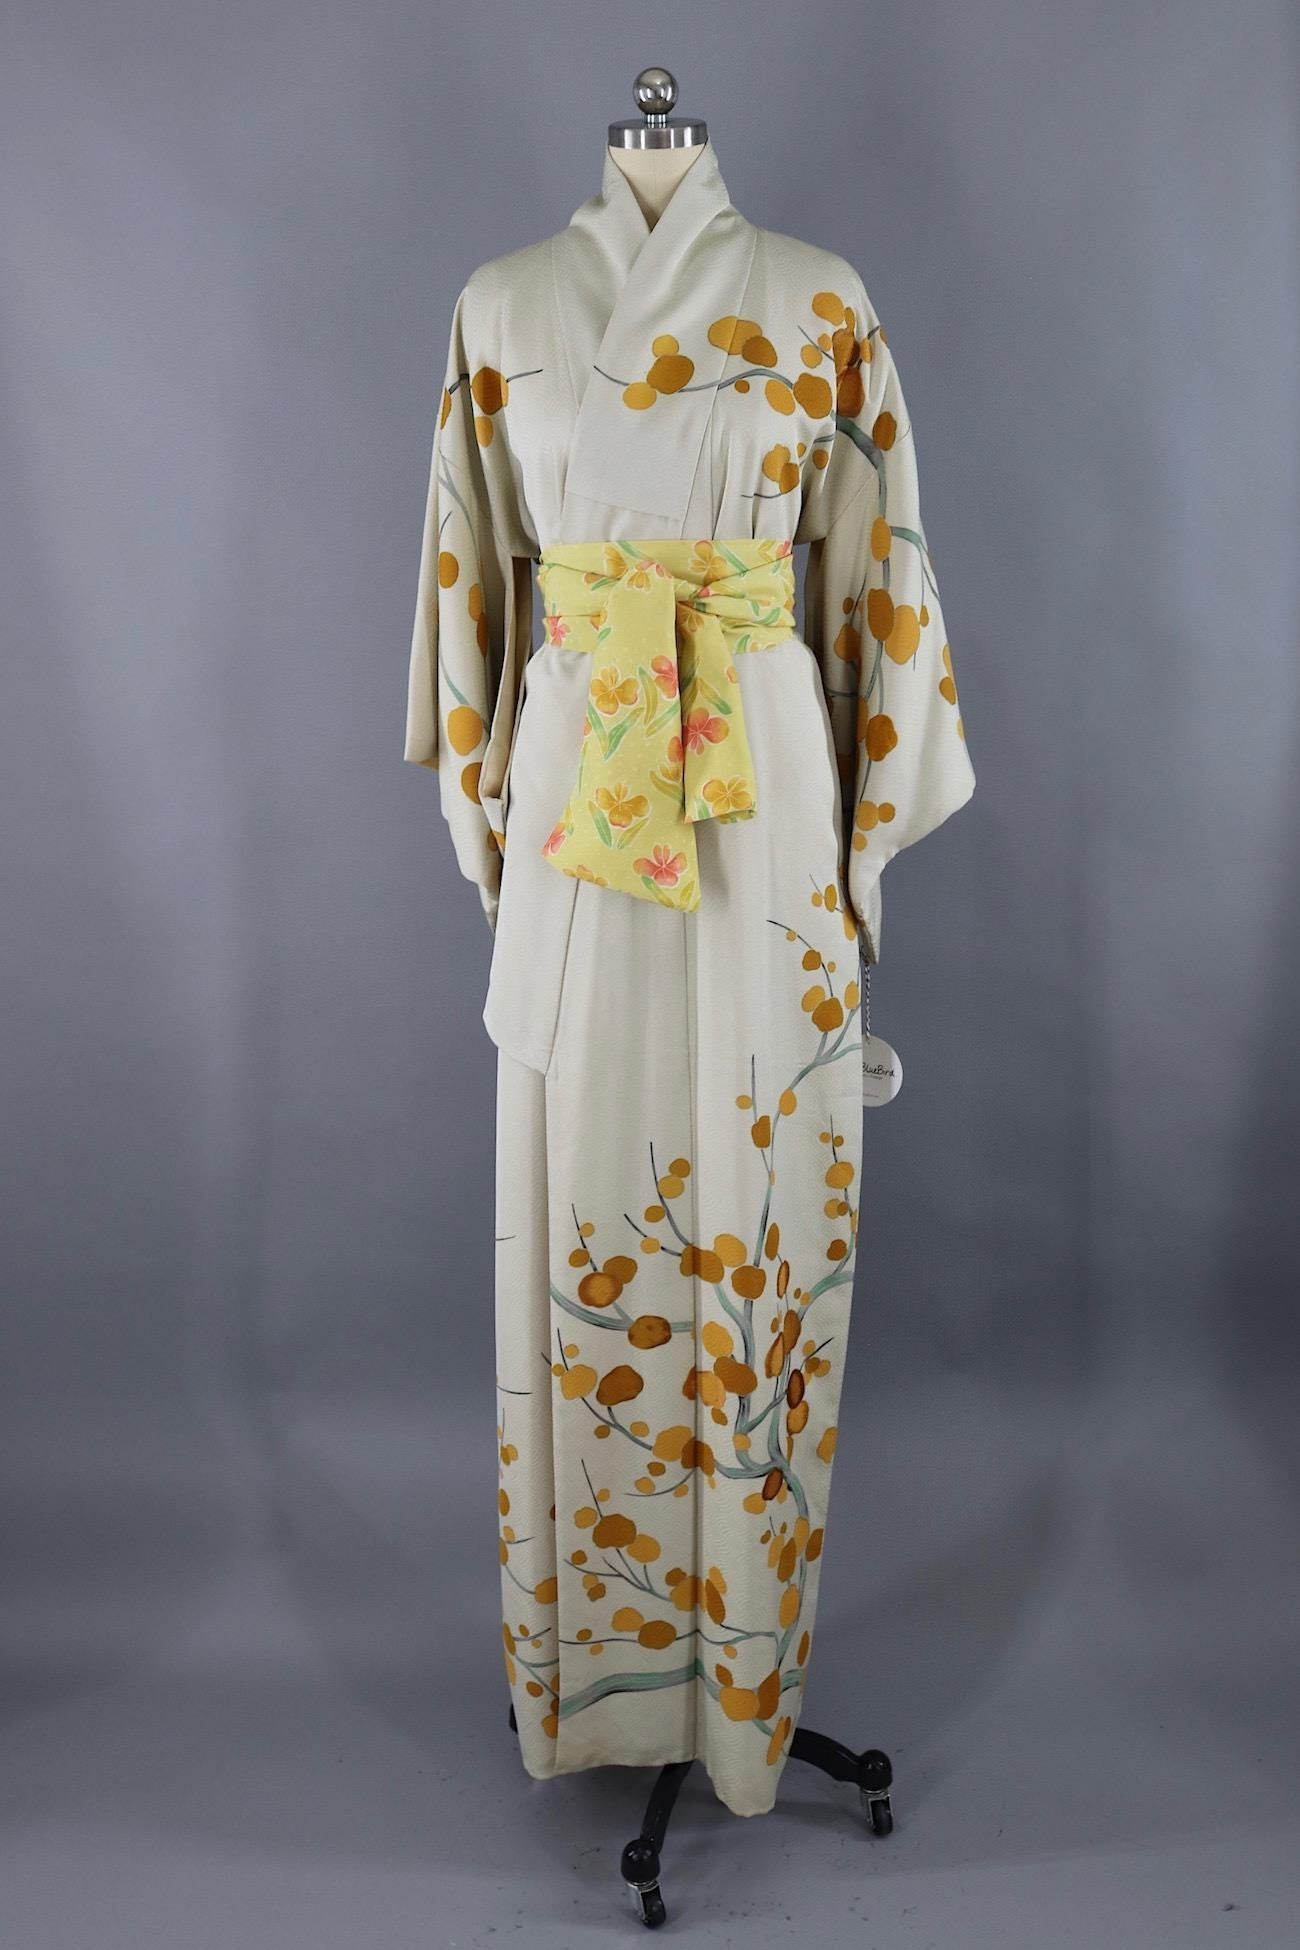 5b453f7930b4 Vintage Silk Kimono Robe / Ivory and Mustard Yellow Floral Branches -  ThisBlueBird